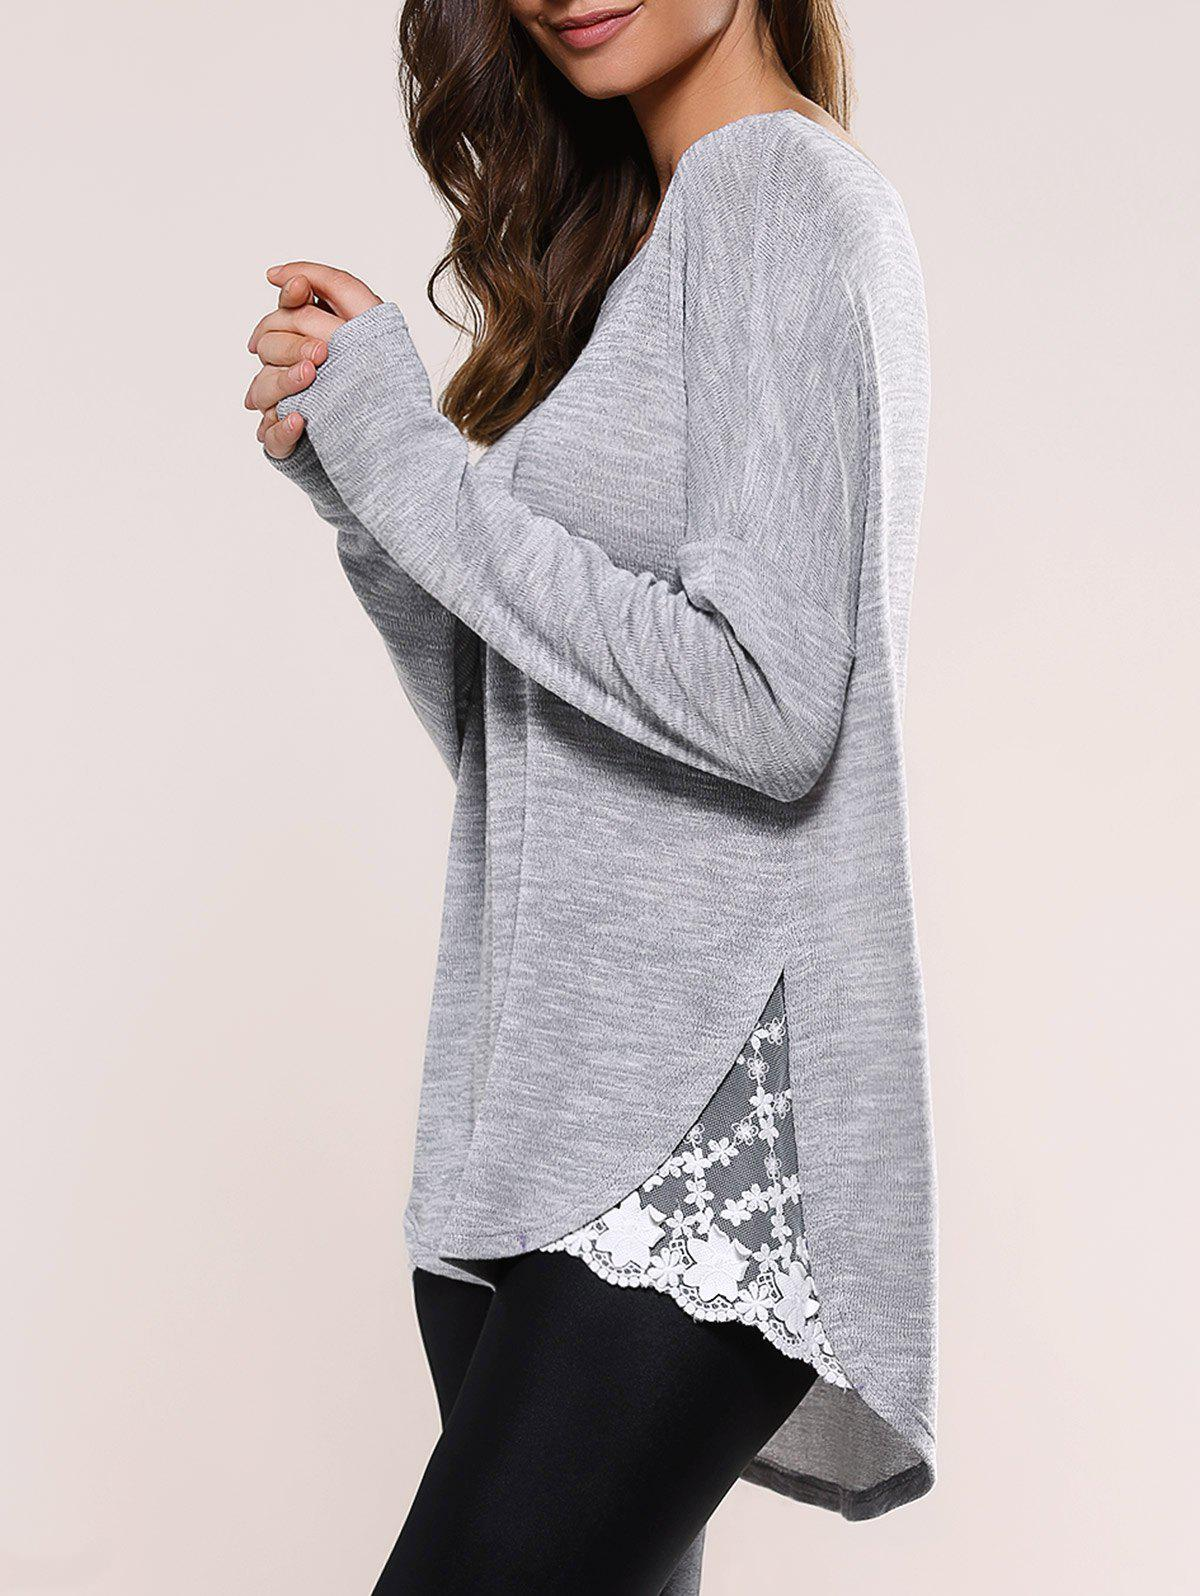 Lace Insert Asymmetric Pullover Sweater - BLUE GRAY XL